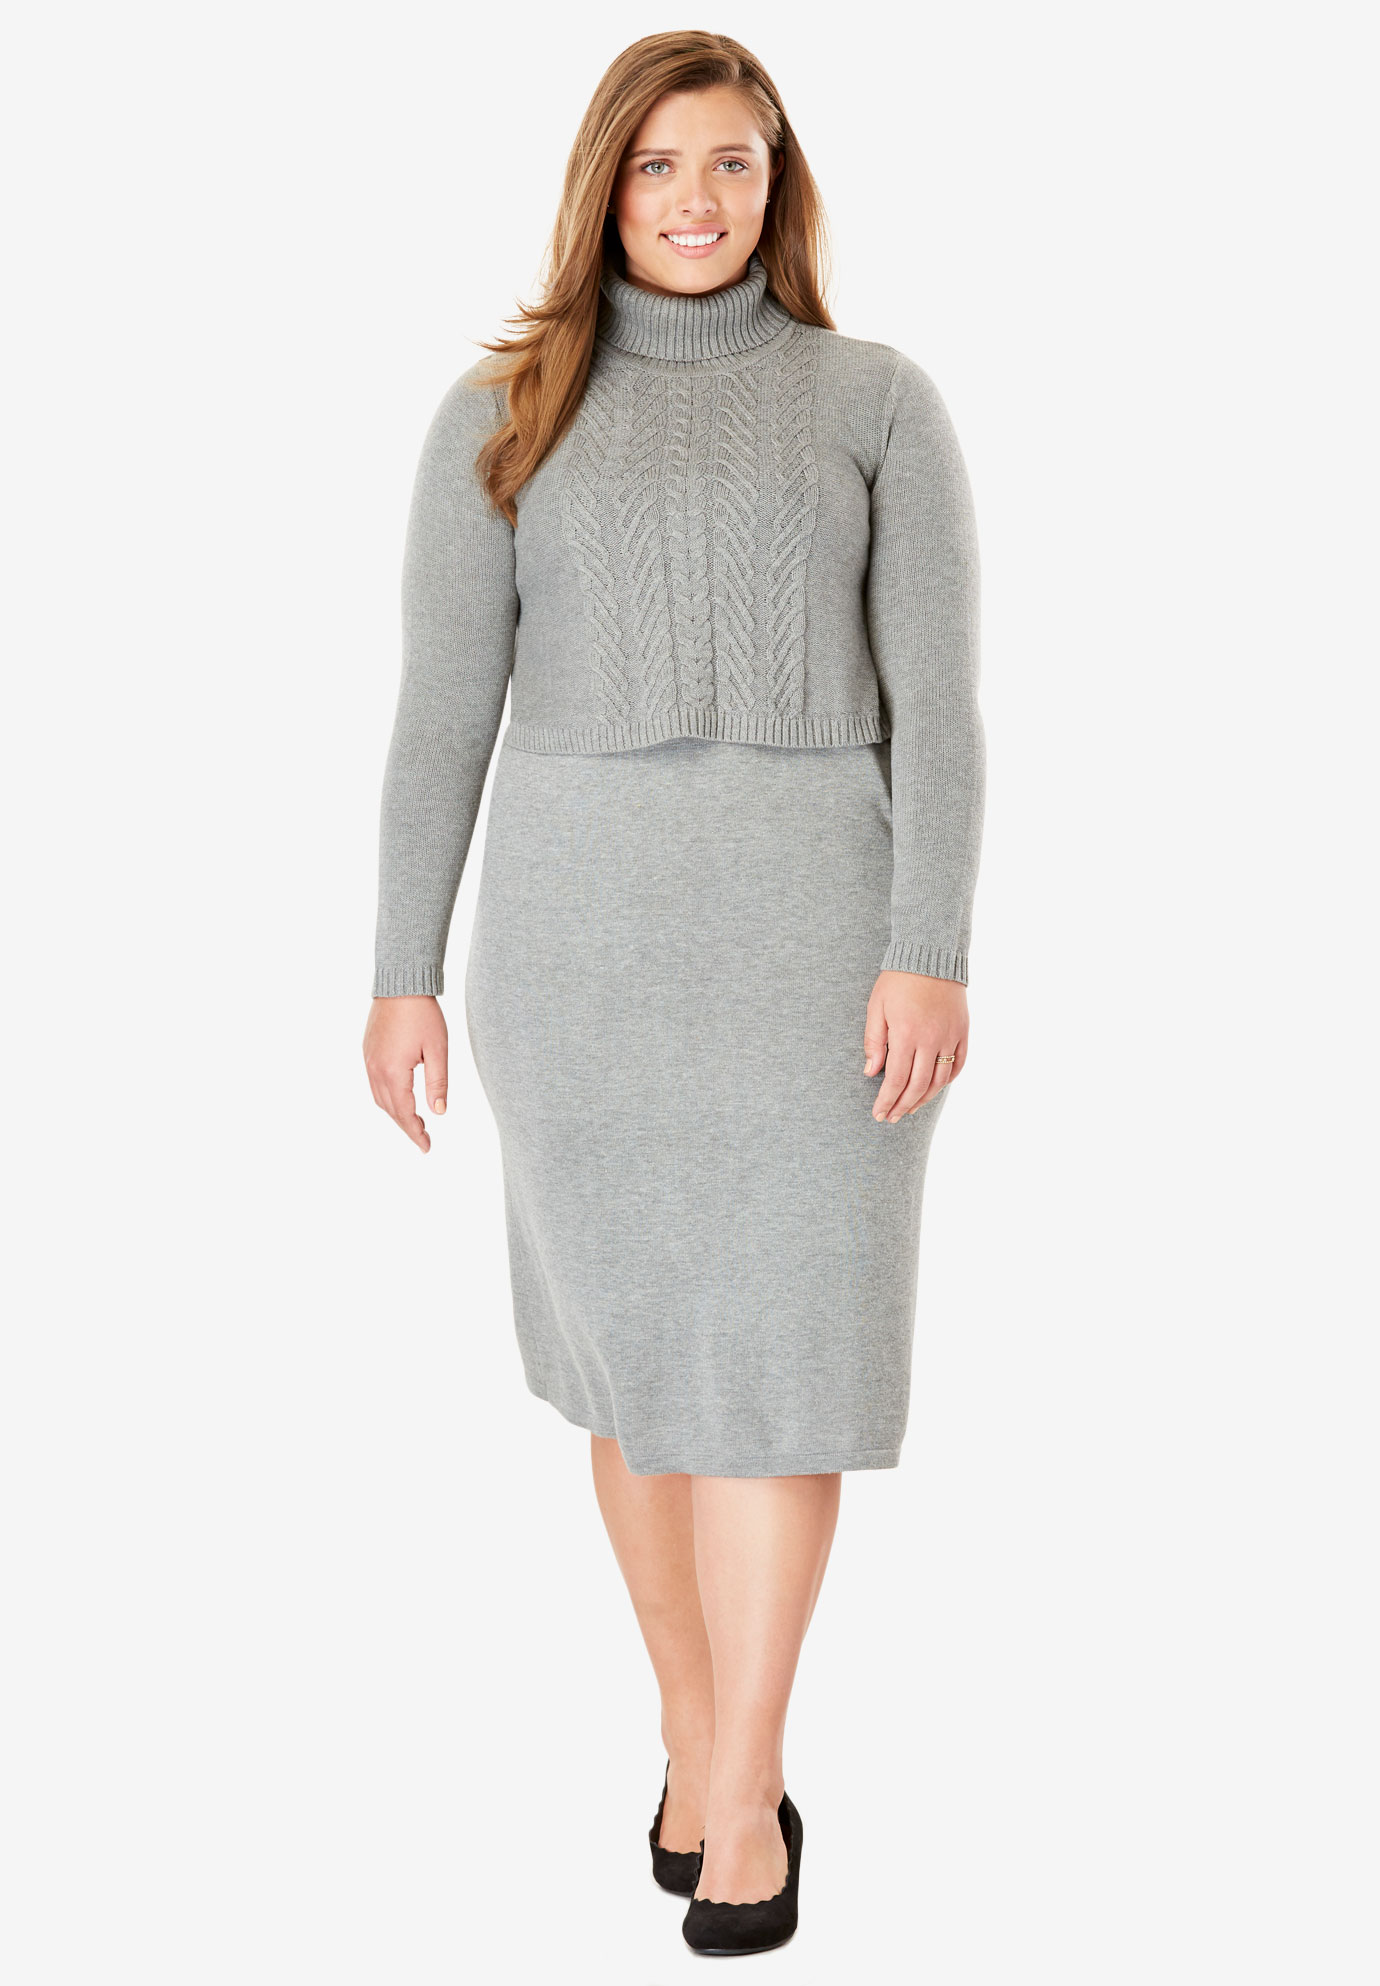 Popover Sweater Dress| Plus Size Casual Dresses | Full Beauty